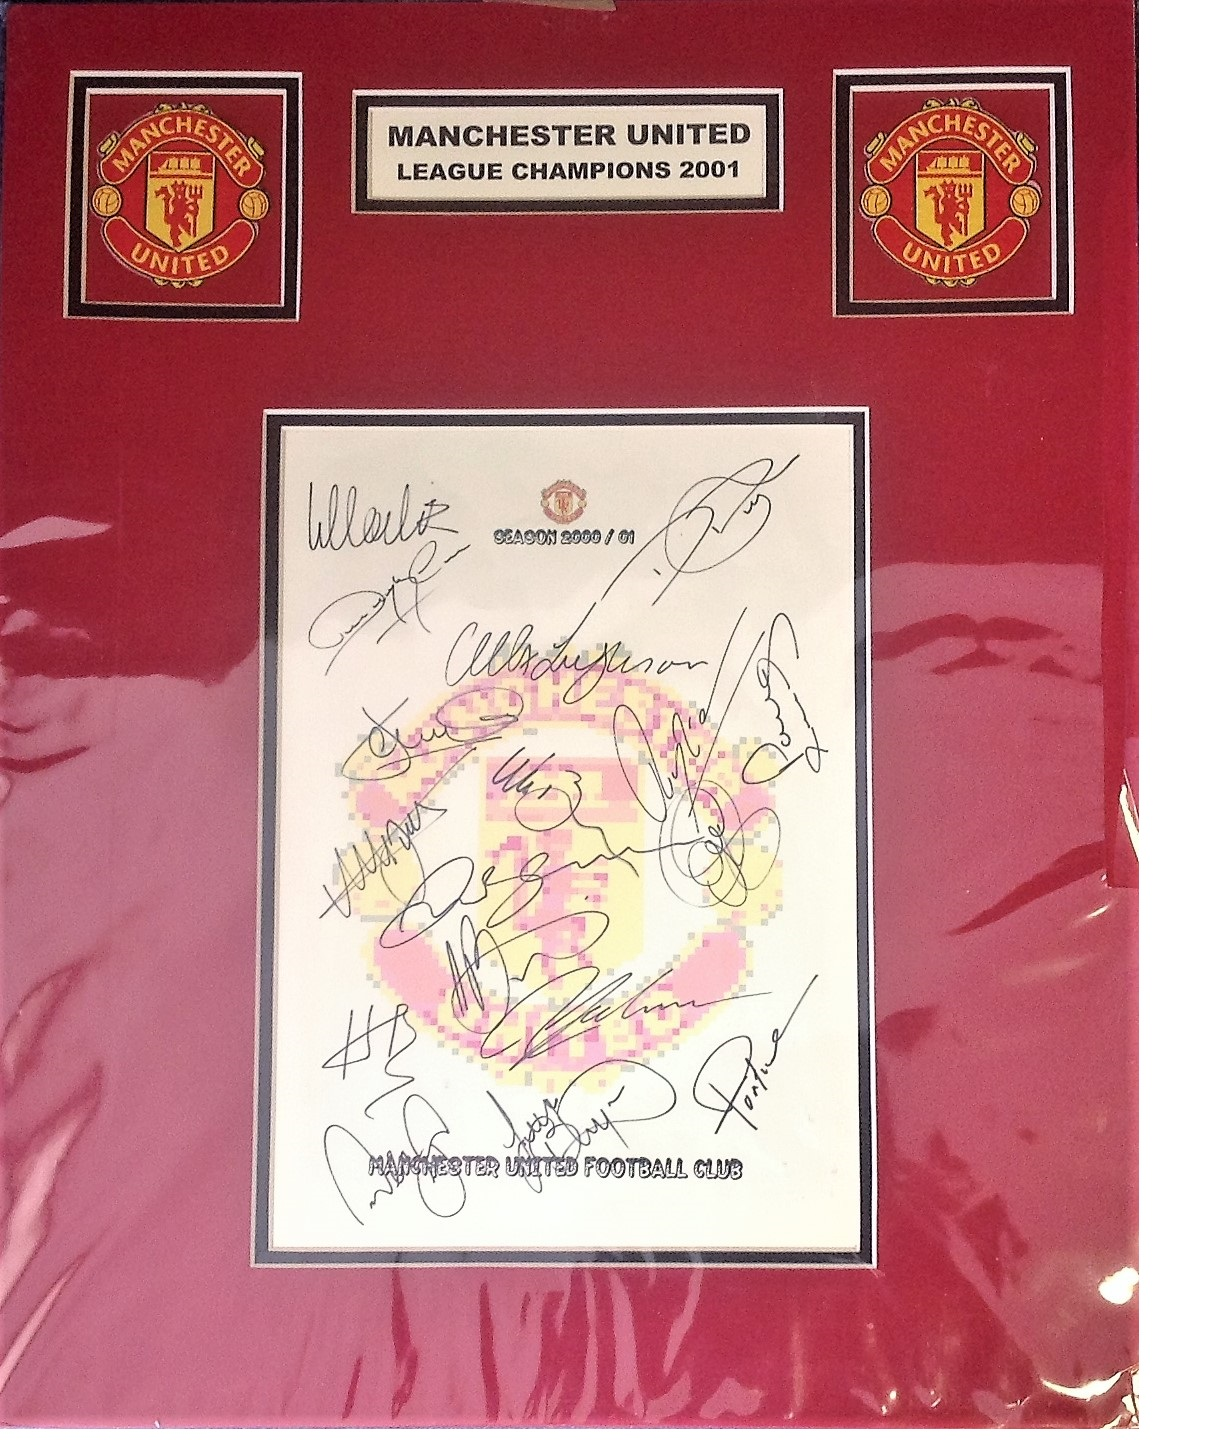 Lot 48 - Football Manchester united mounted signature piece 2001 League Champions signed by Alex Ferguson and